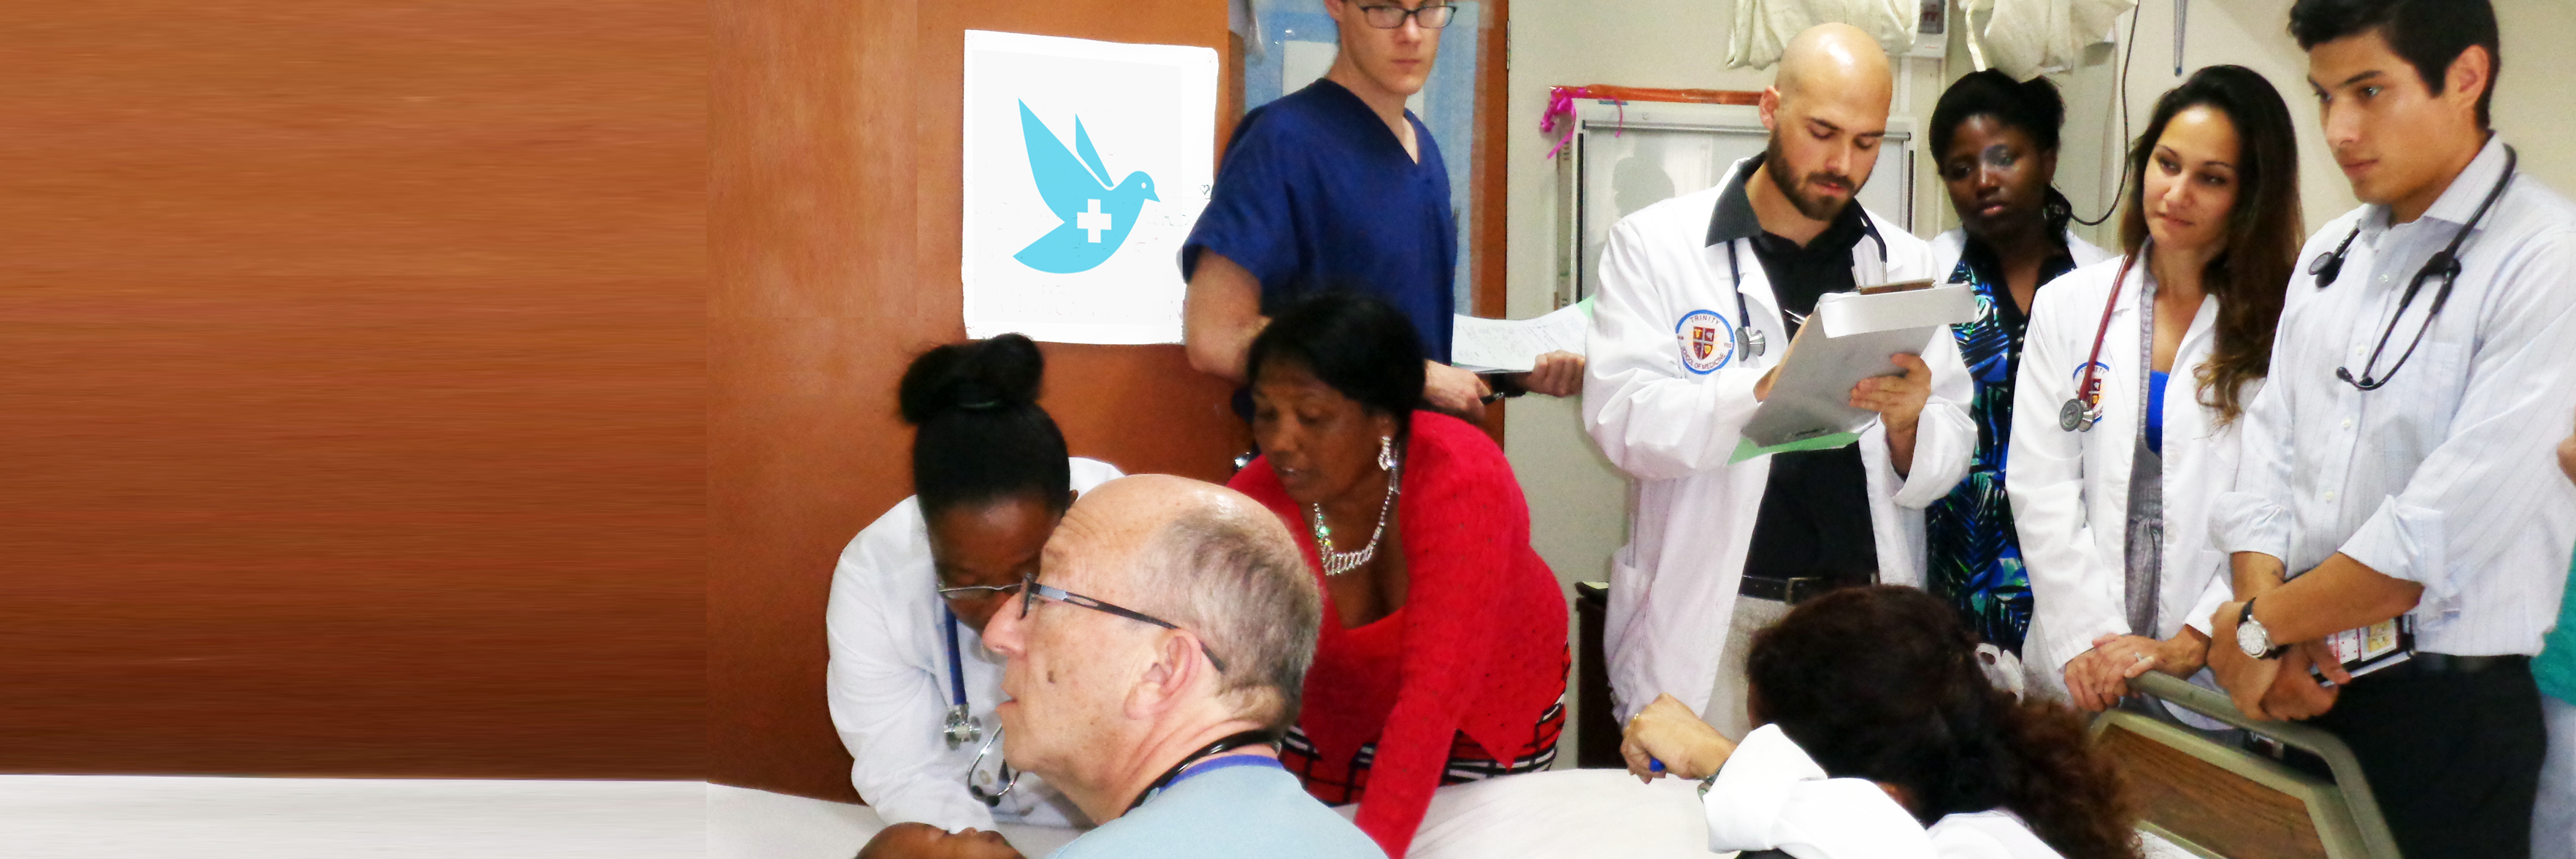 Trinity Students Join World Pediatric Project for Cardiology Mission in St. Vincent